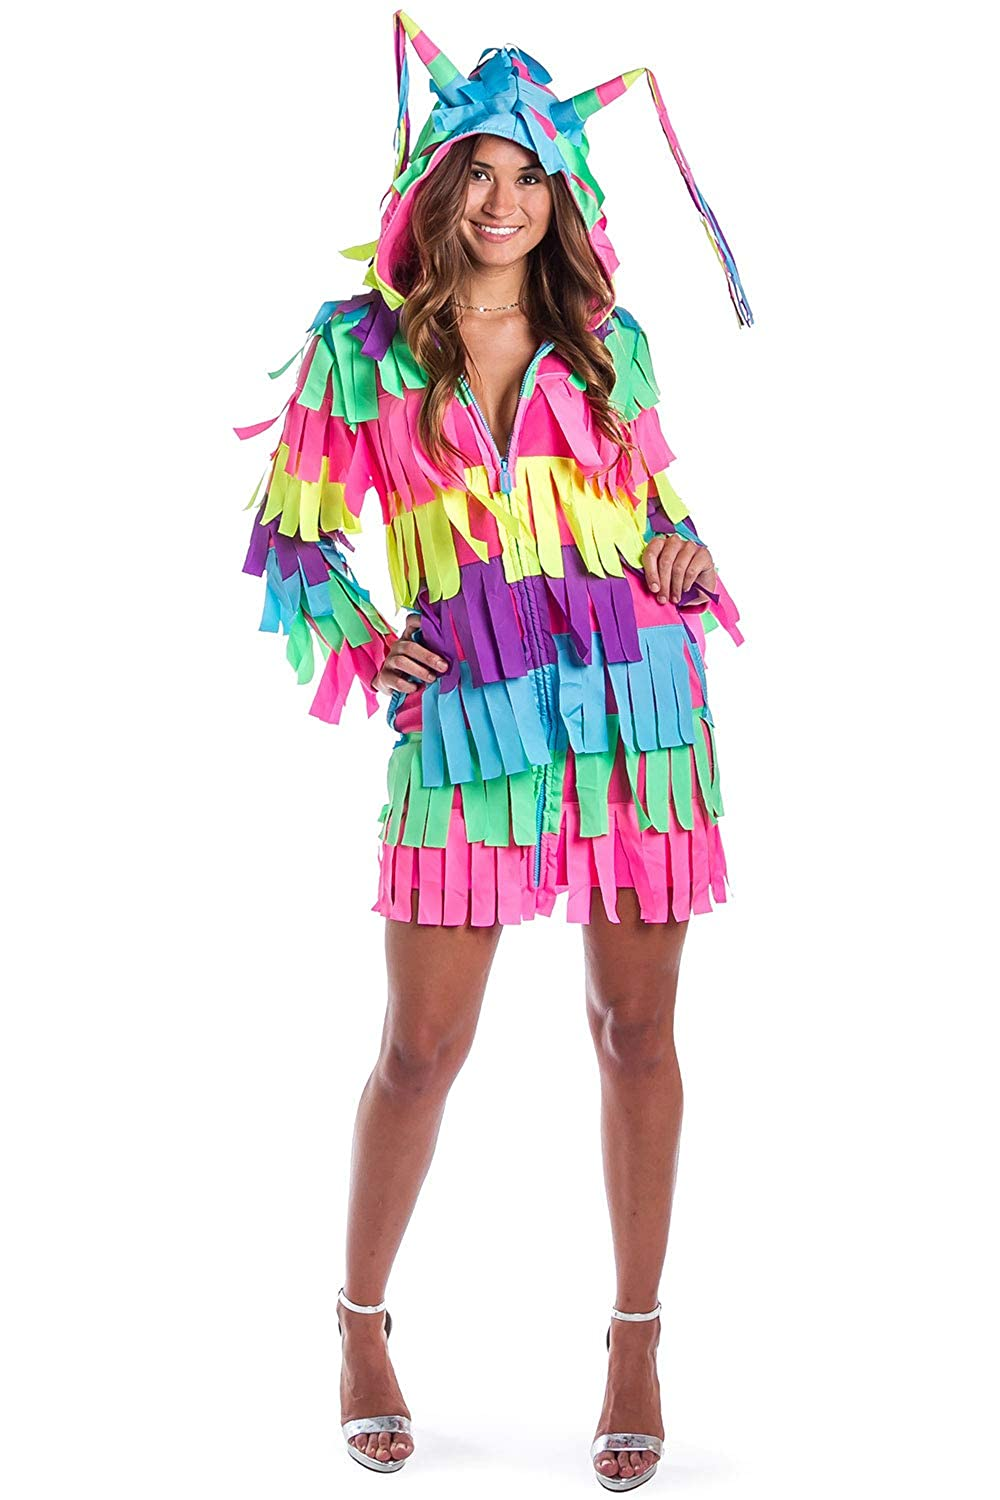 Women's Funny Piñata Costume Dress - DeluxeAdultCostumes.com